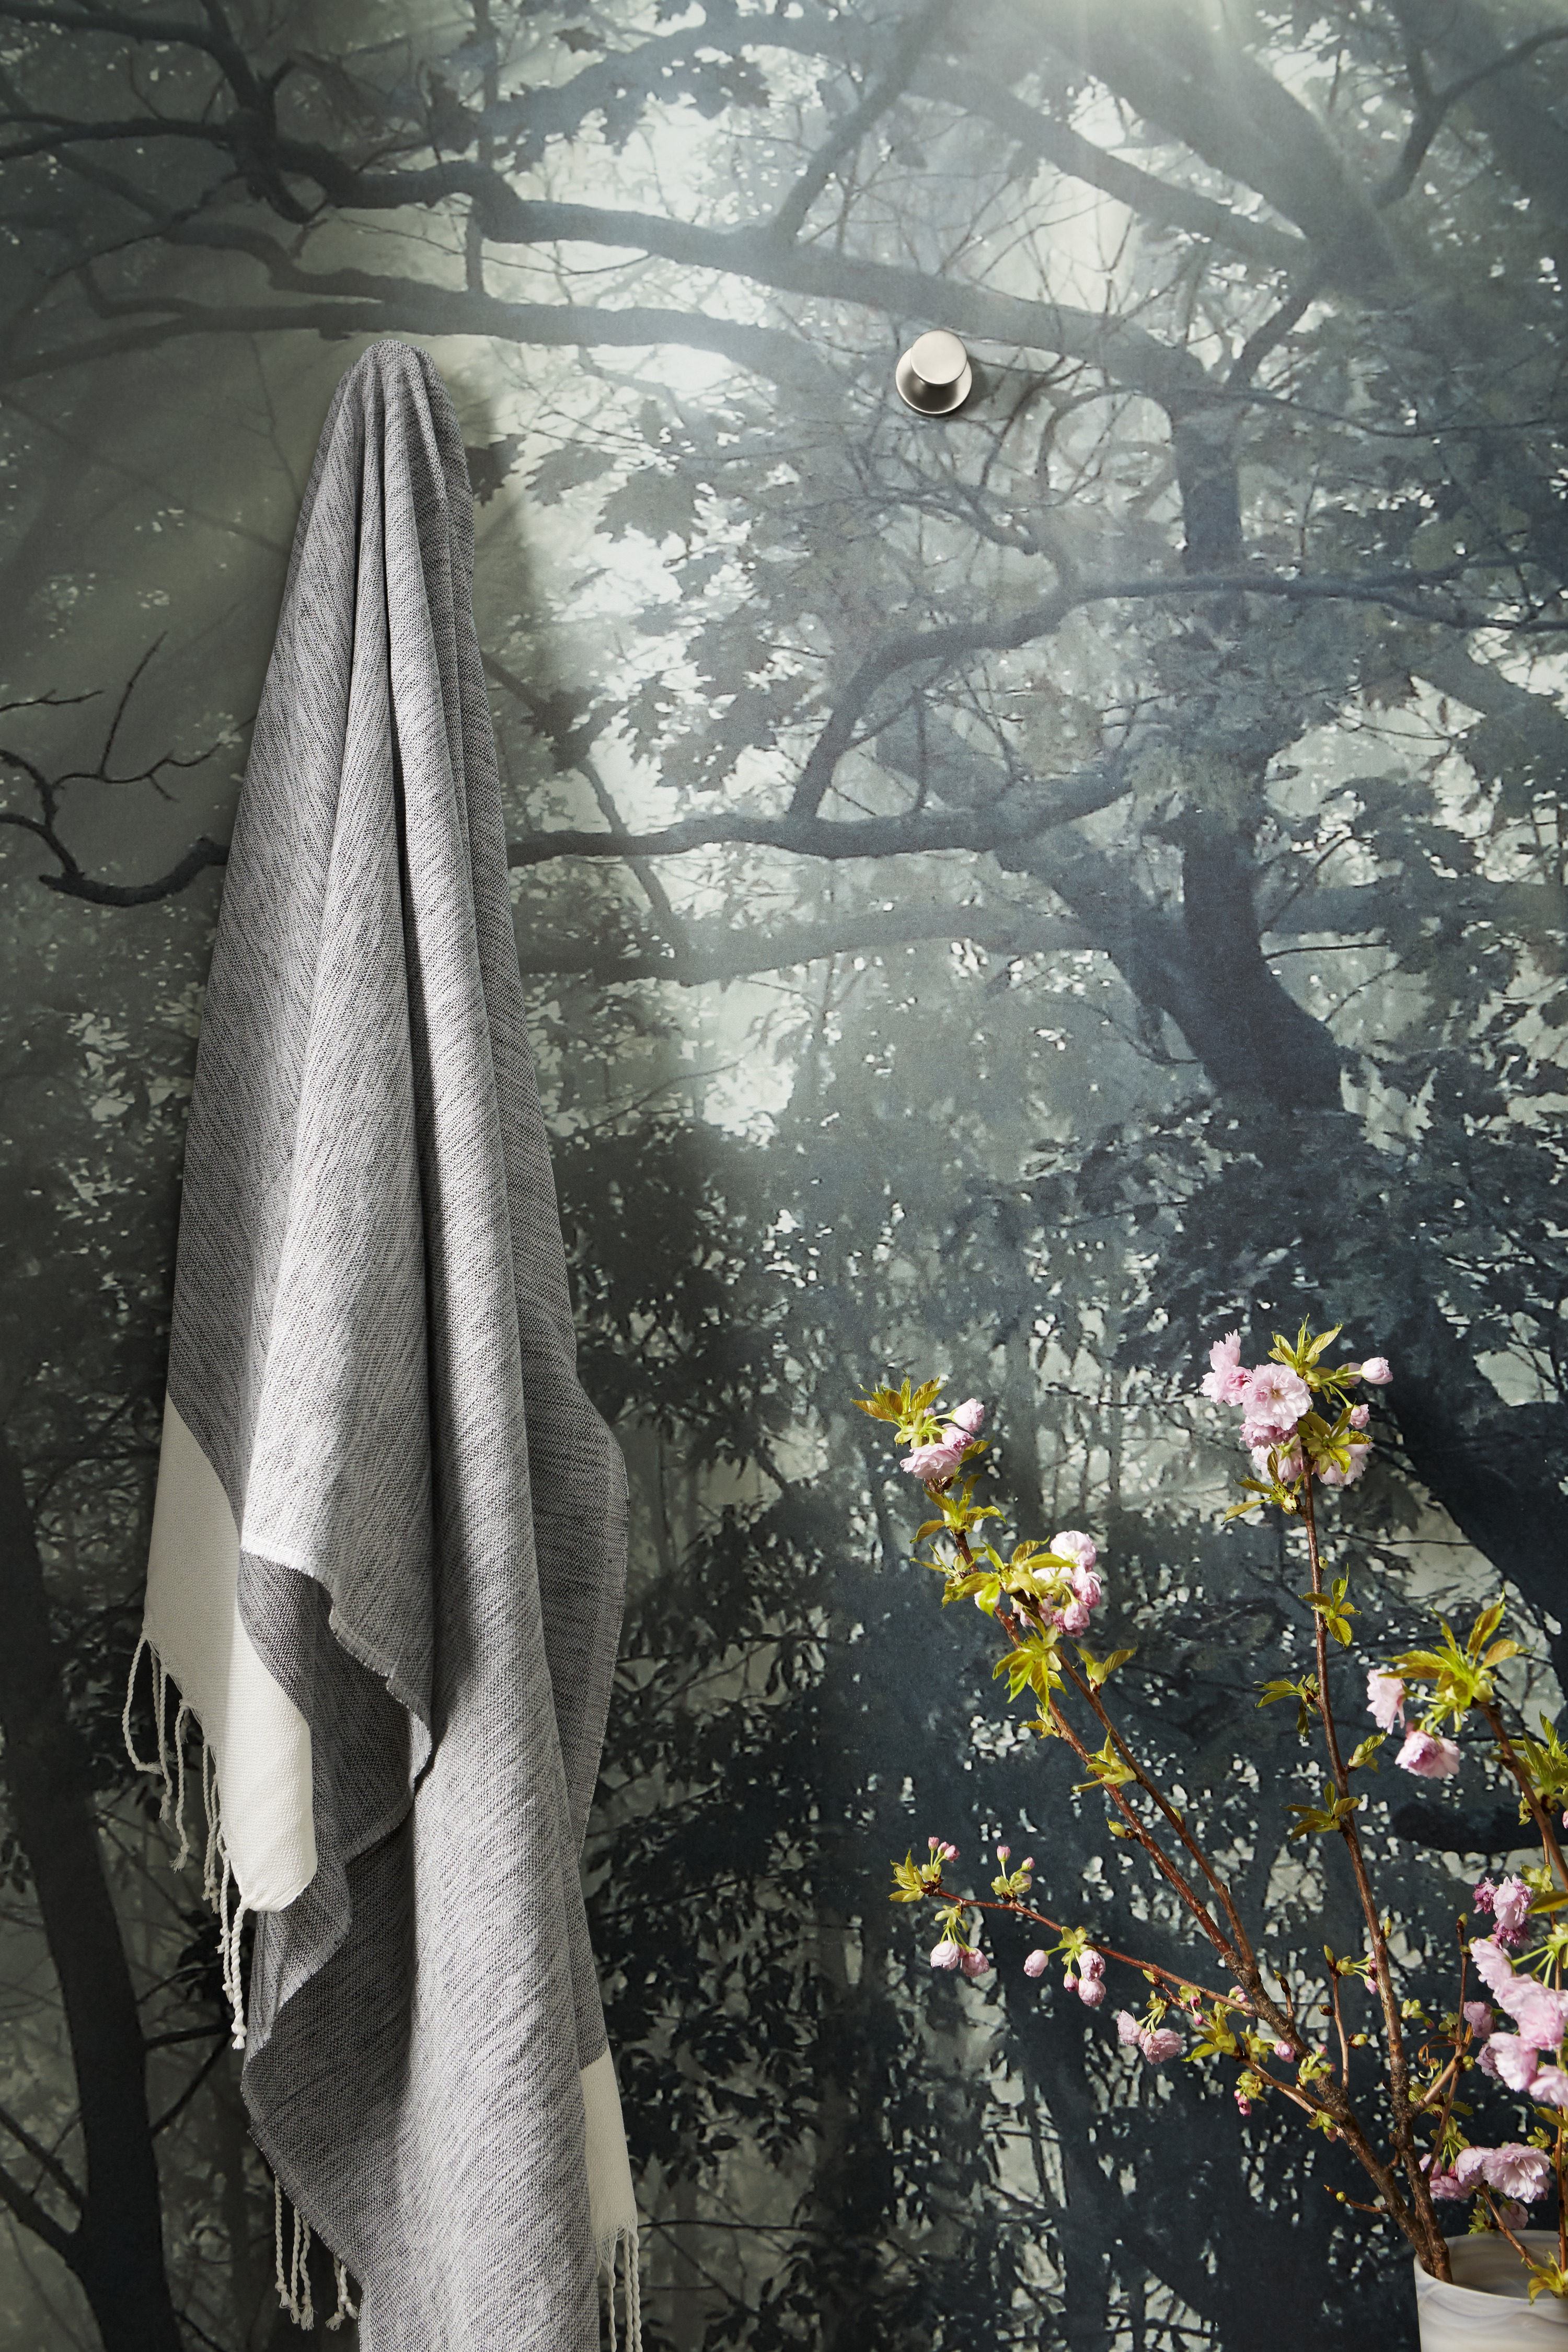 Stillness® robe hook     Custom photorealistic wallpaper draws on nature-inspired elements of Scandinavian design and brings the outdoors in.